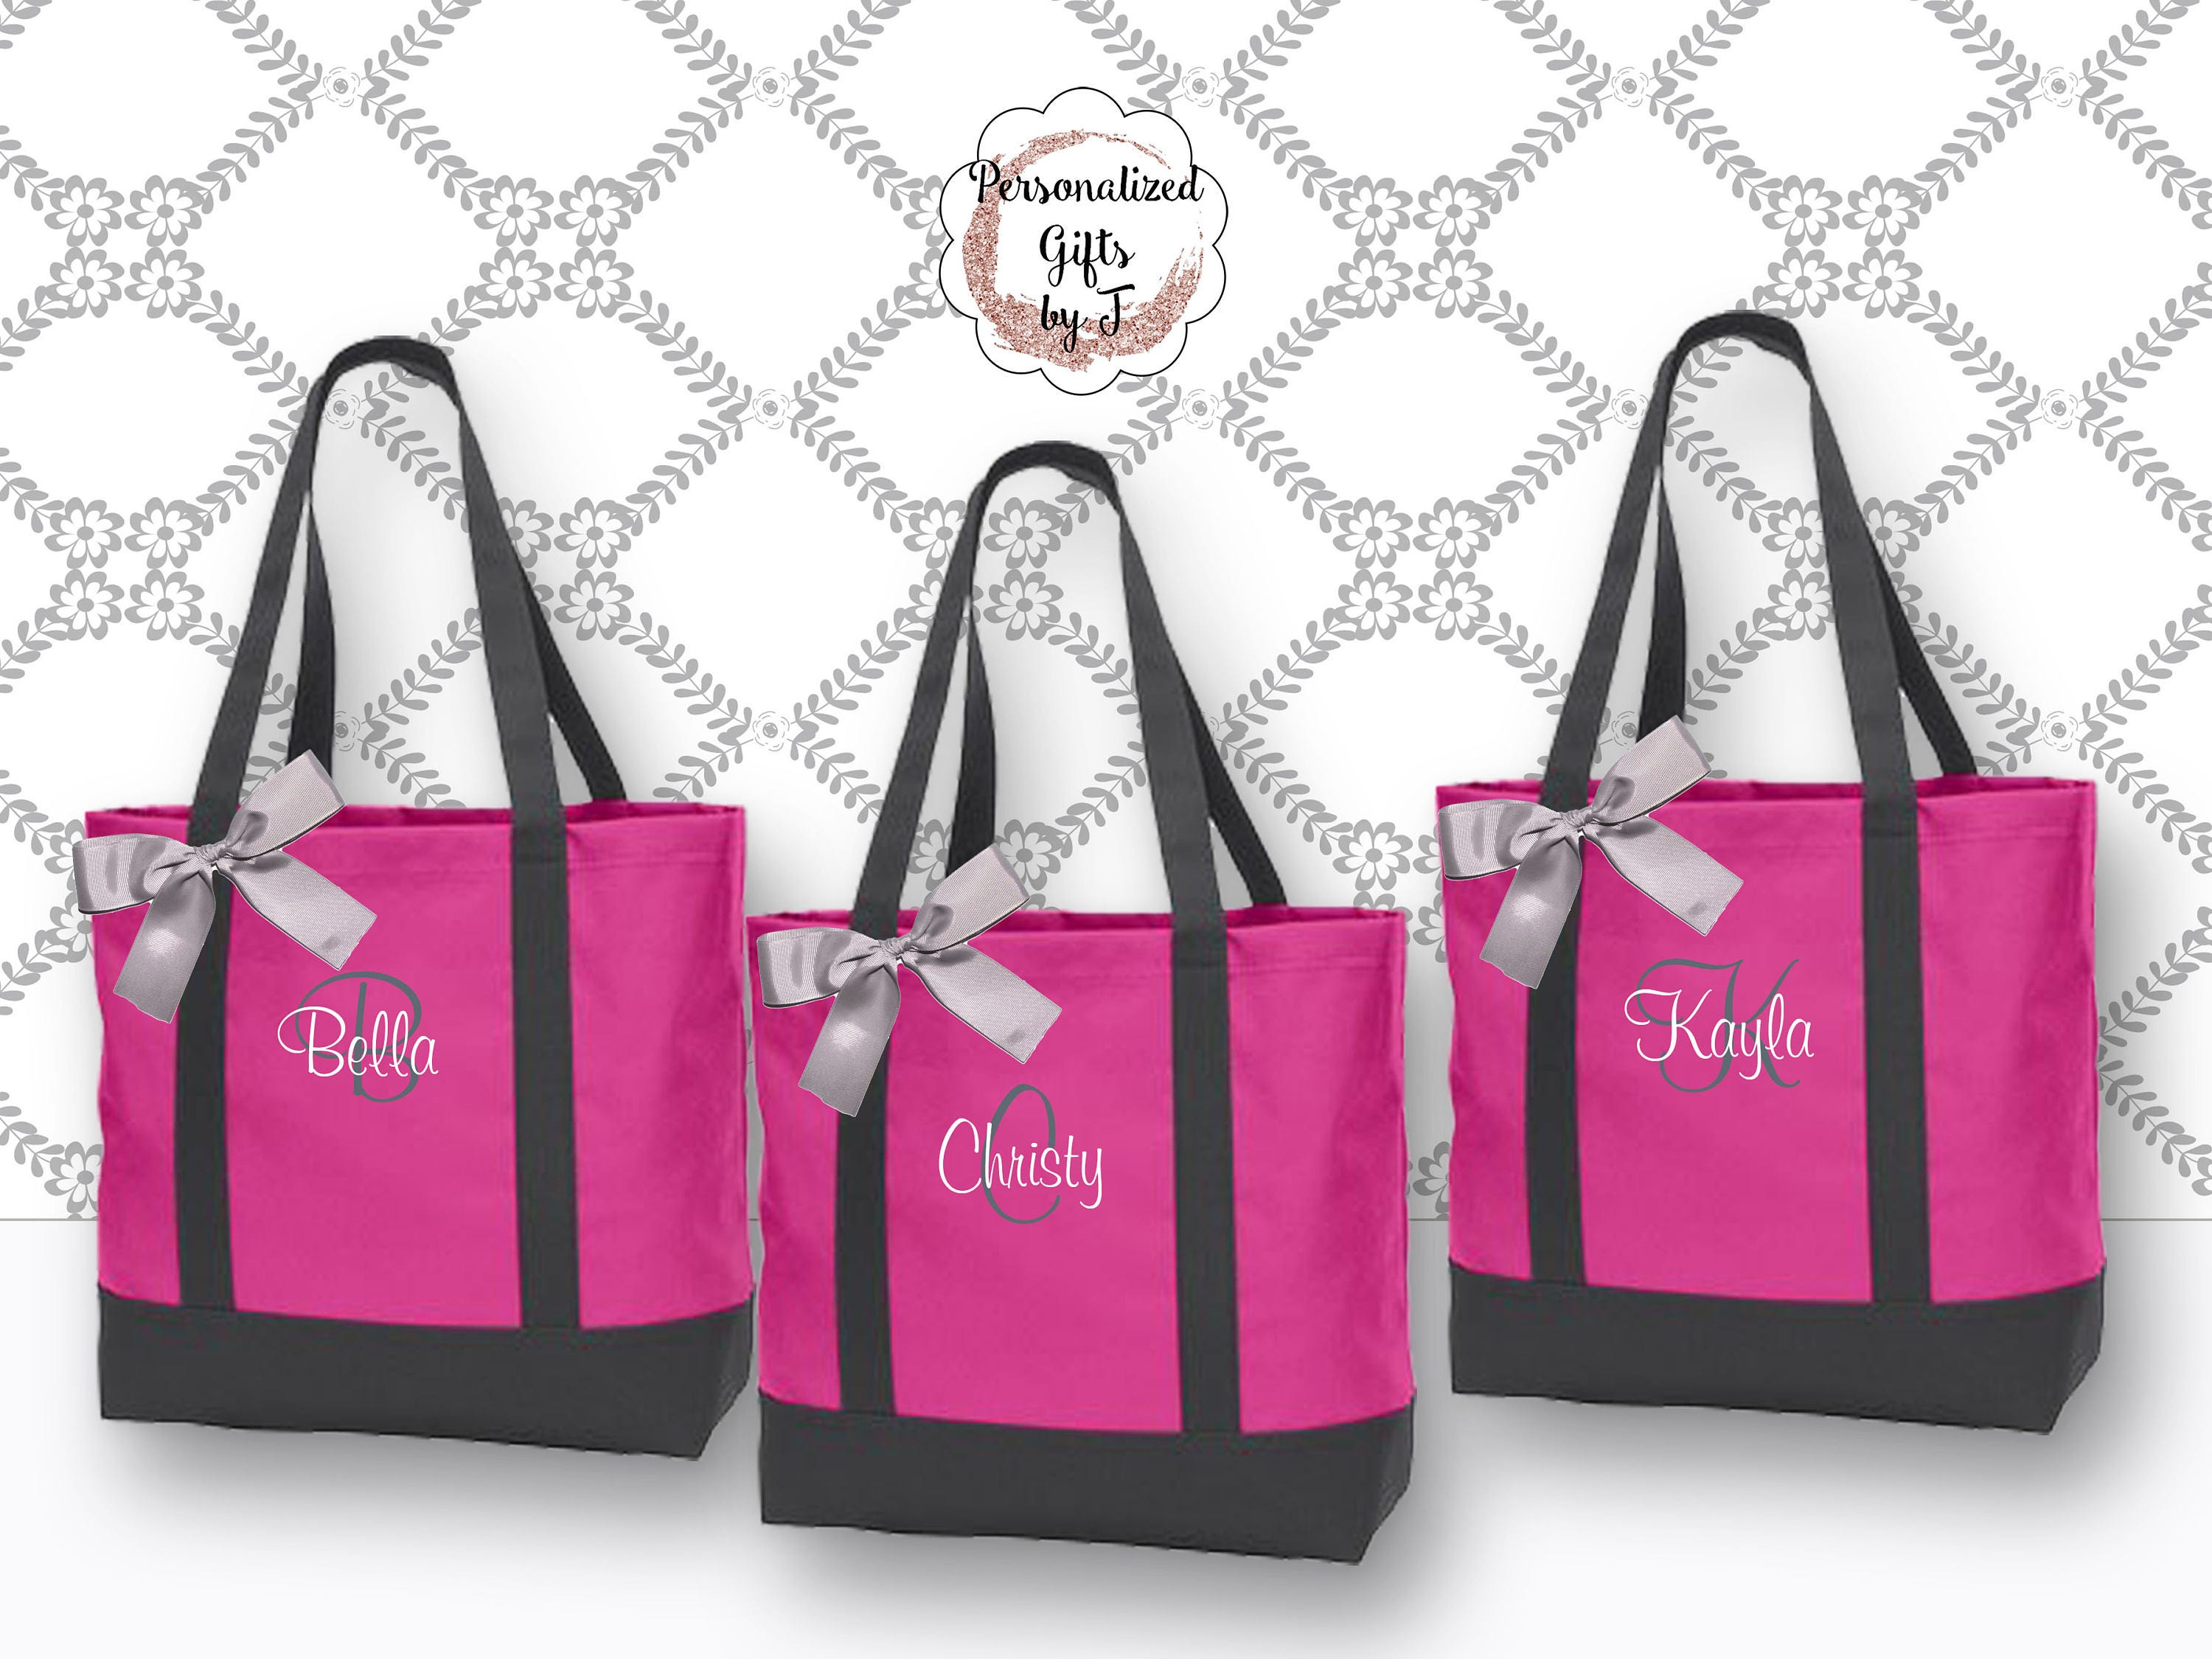 Personalized Bridesmaid Tote Bags Monogrammed Tote, Bridesmaids Gift ...